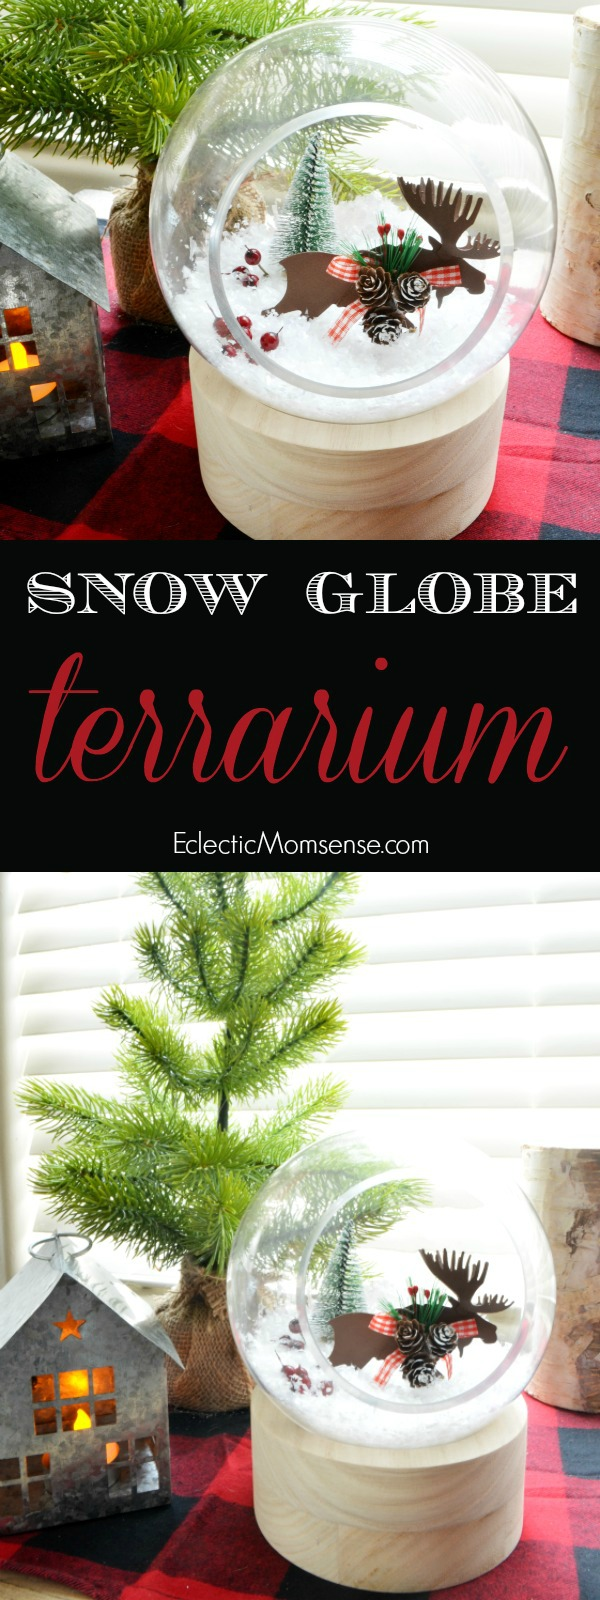 winter snow globe terrarium